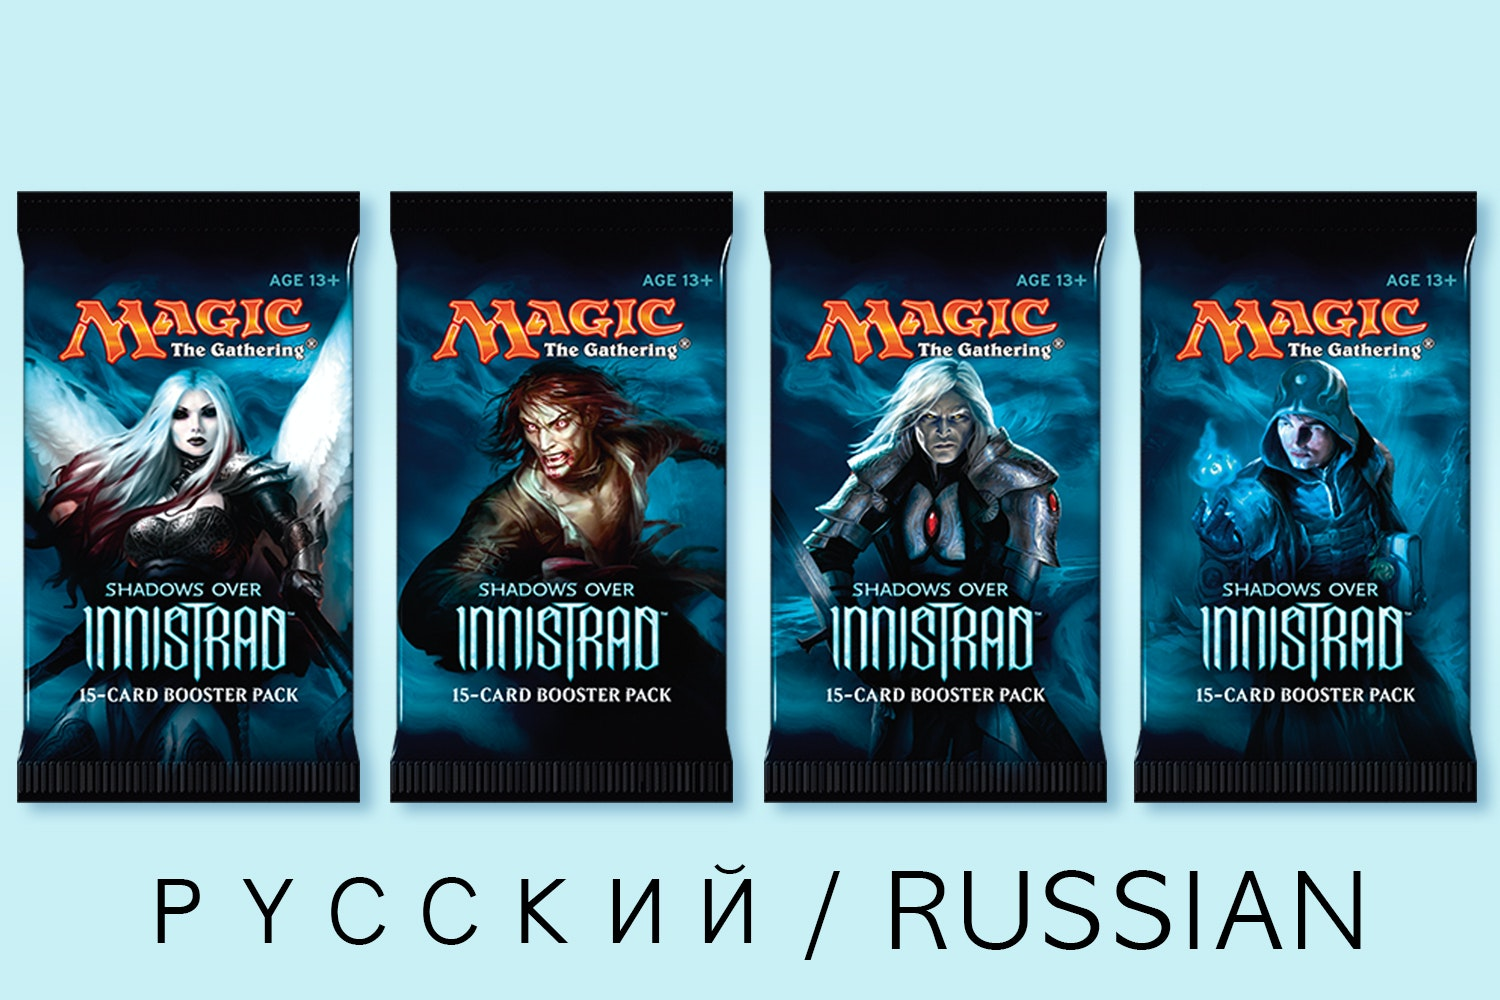 Shadows Over Innistrad in Russian